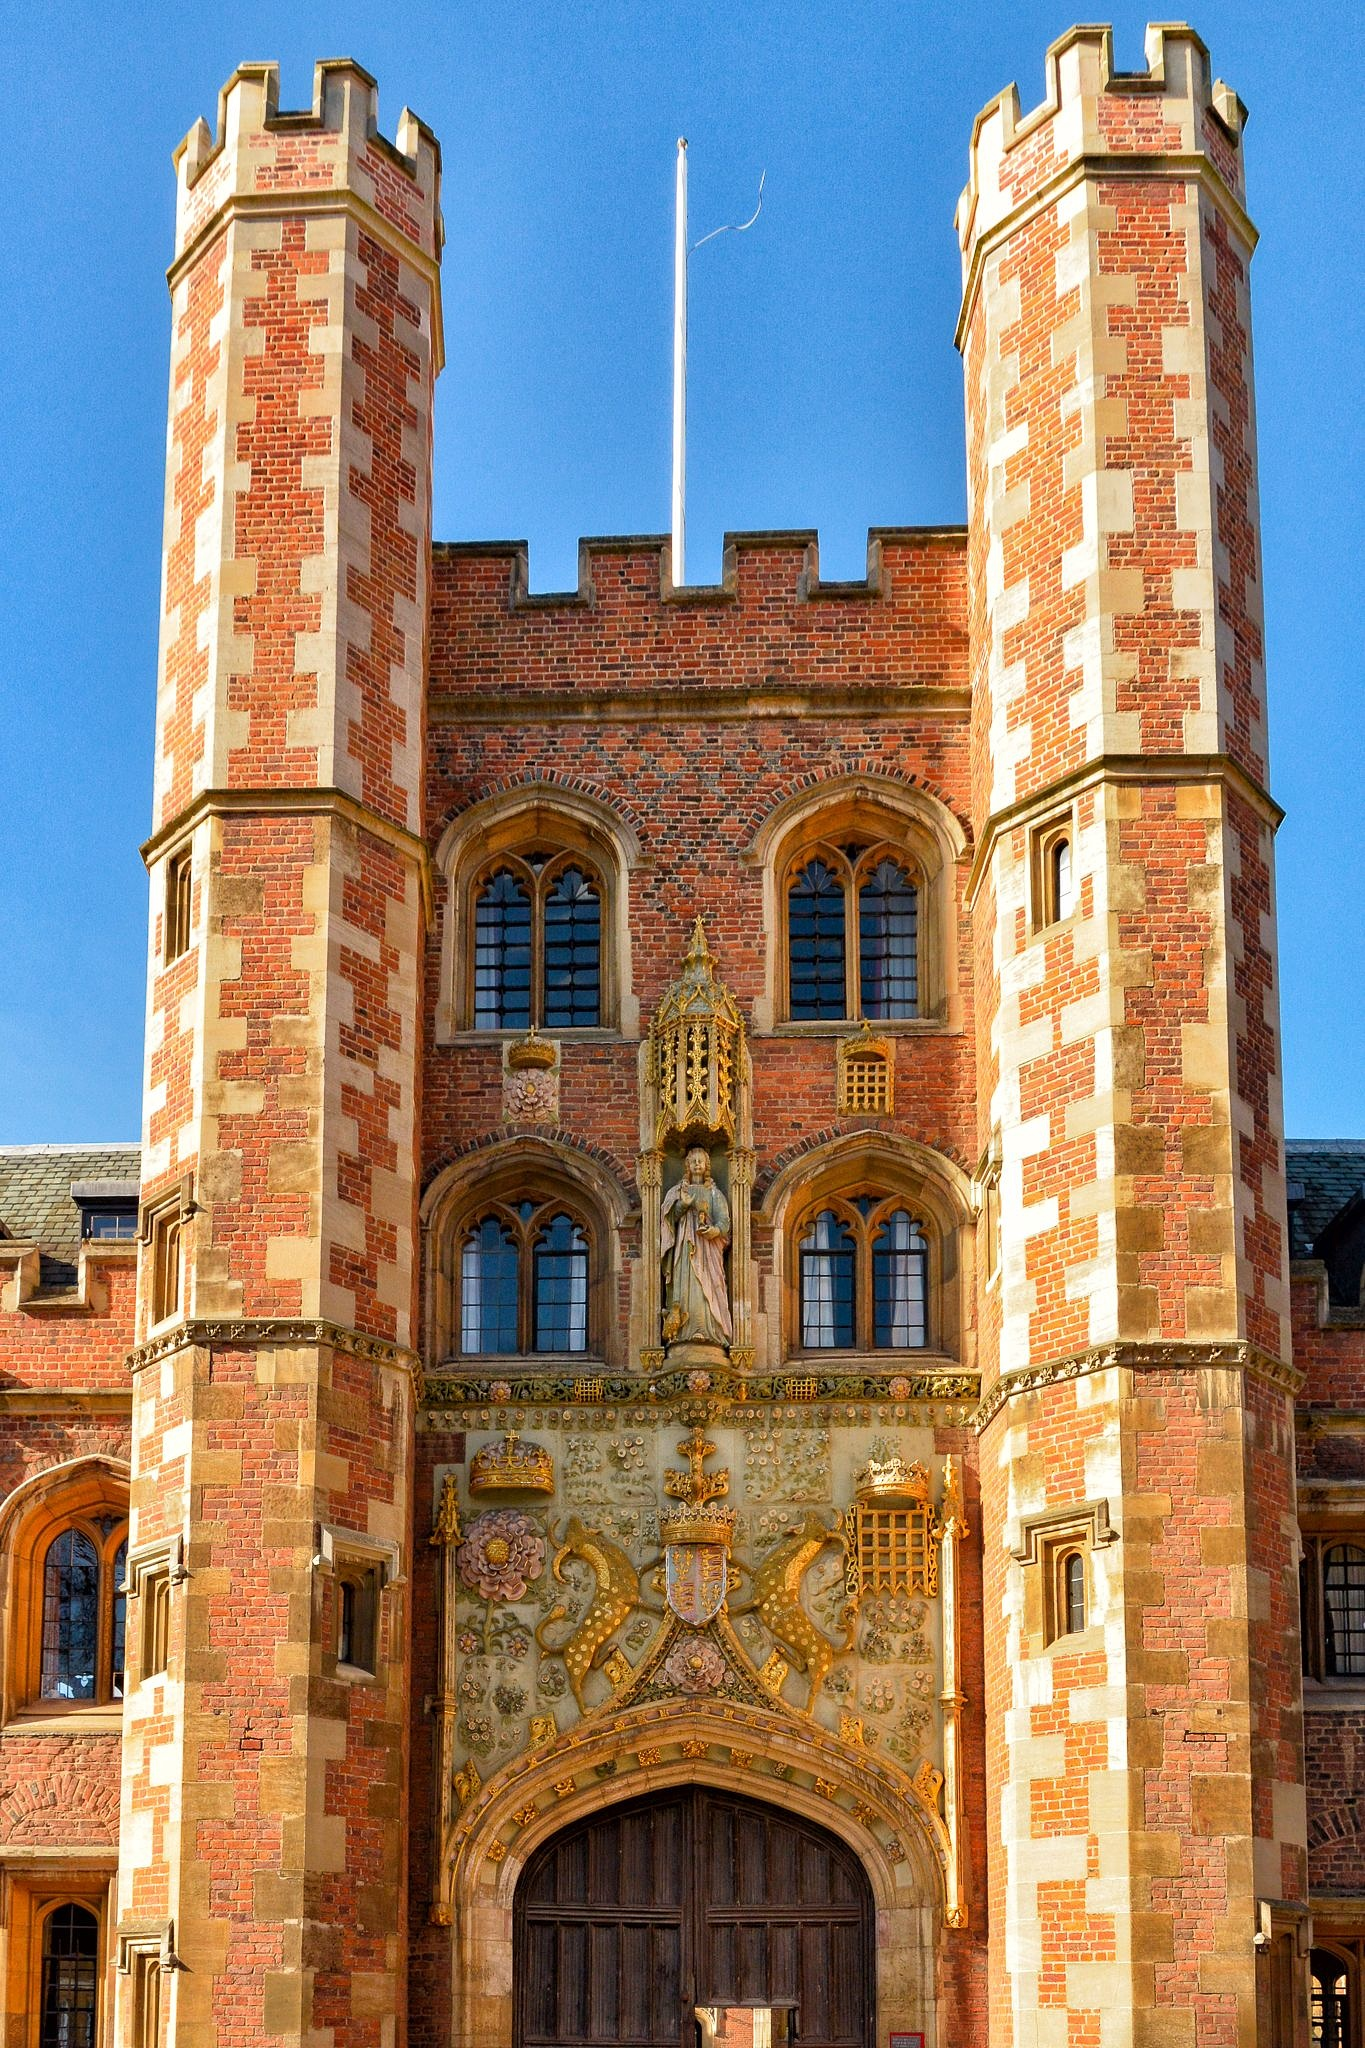 Christchurch College, Cambridge by Ian Reynolds